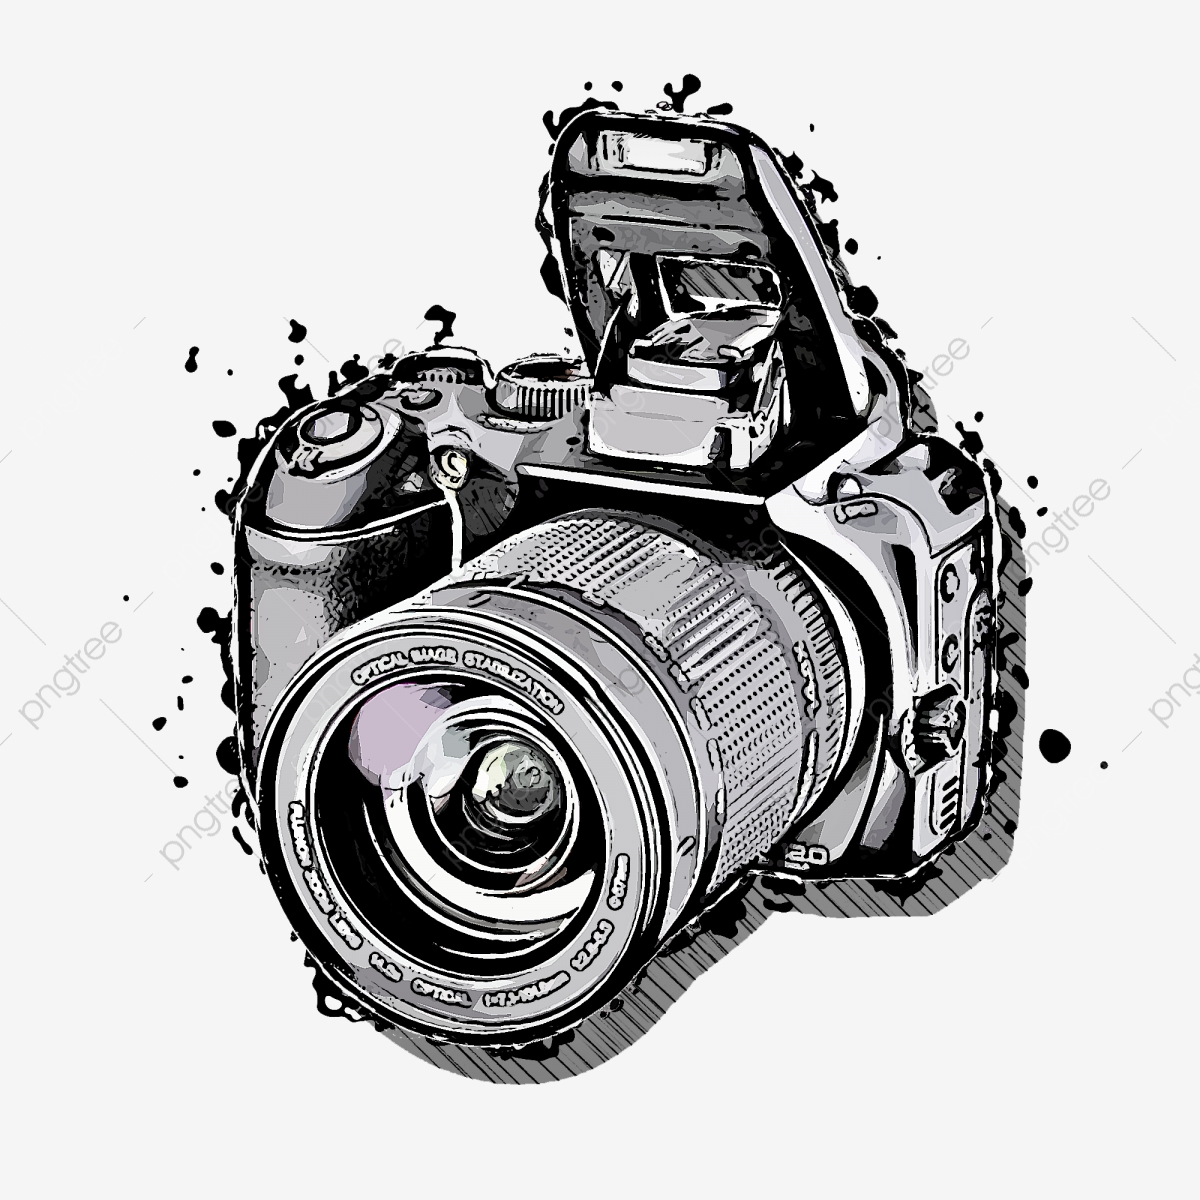 Camera Digital Cameraelectronic Photography Camera Slr Camera Png Transparent Clipart Image And Psd File For Free Download